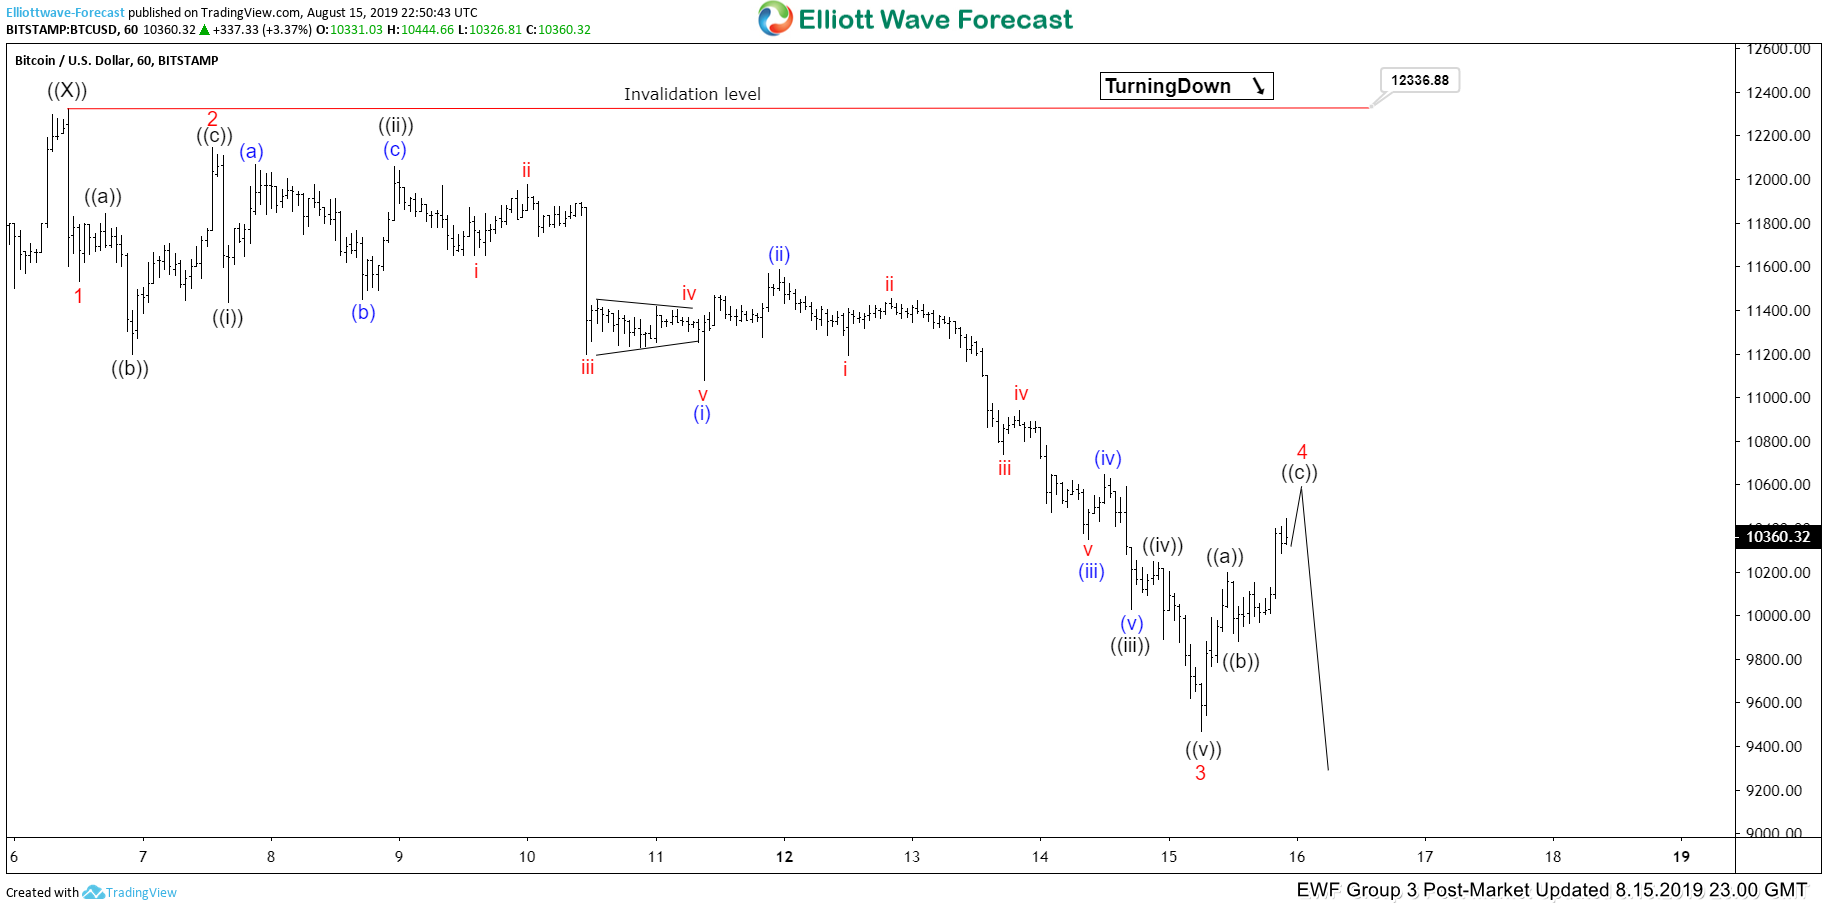 Elliott Wave View: Bitcoin (BTCUSD) Looking for Larger Correction